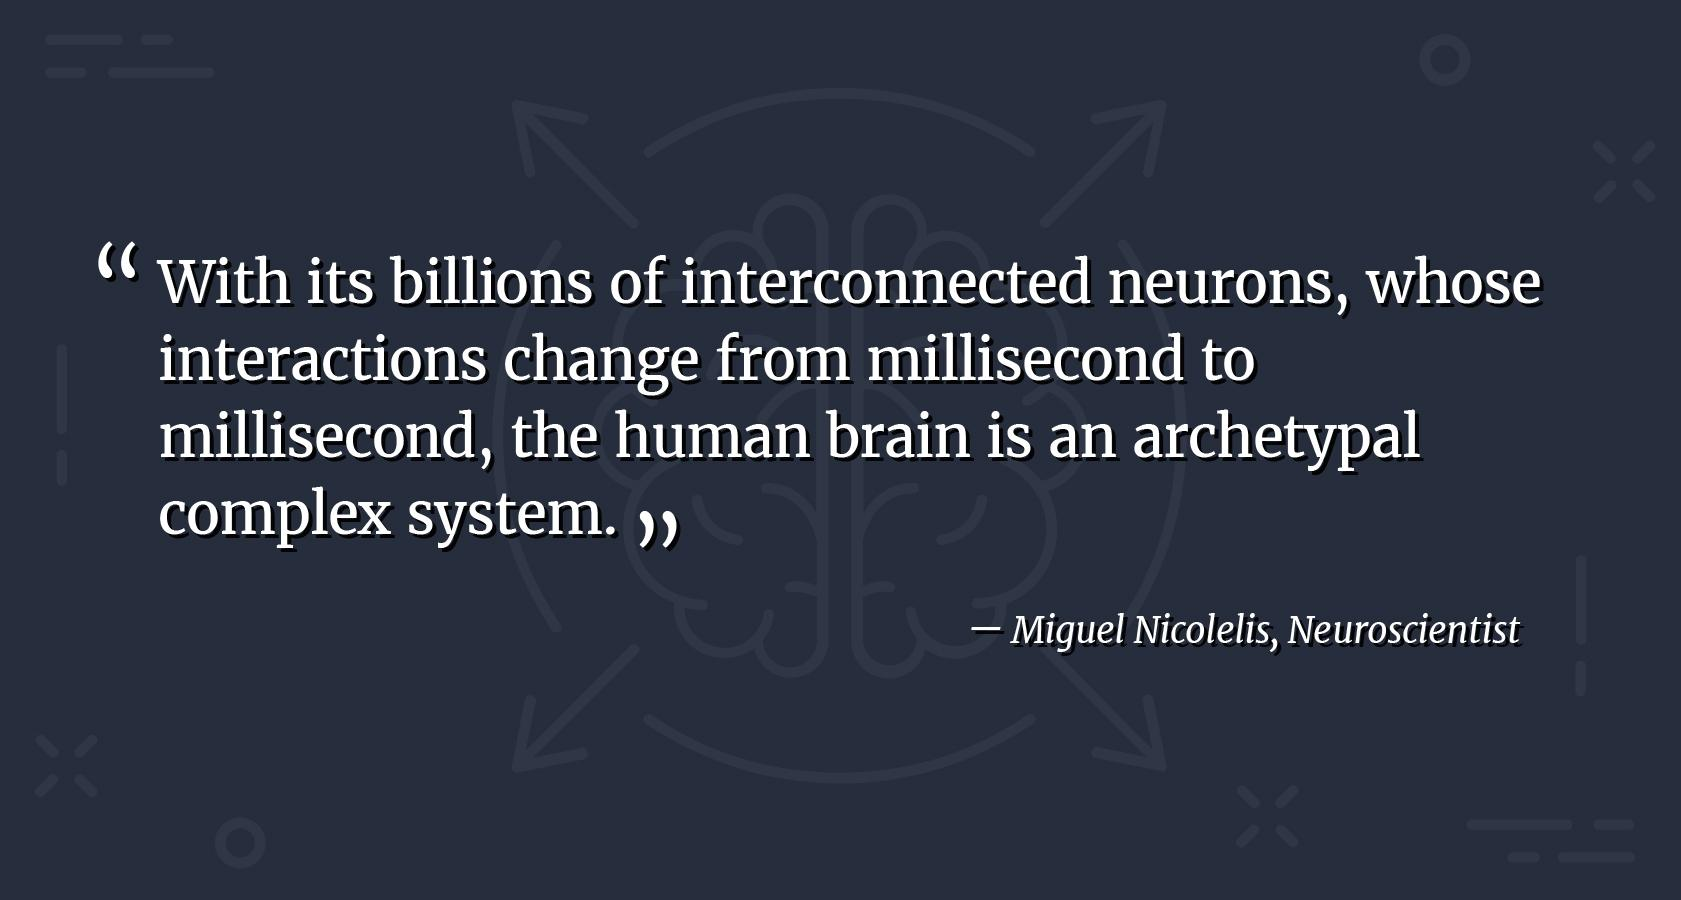 Complex design patterns quote by neuroscientist Miguel Nicolelis. With its billions of interconnected neurons, whose interactions change from millisecond to millisecond, the human brain is an archetypal complex system.